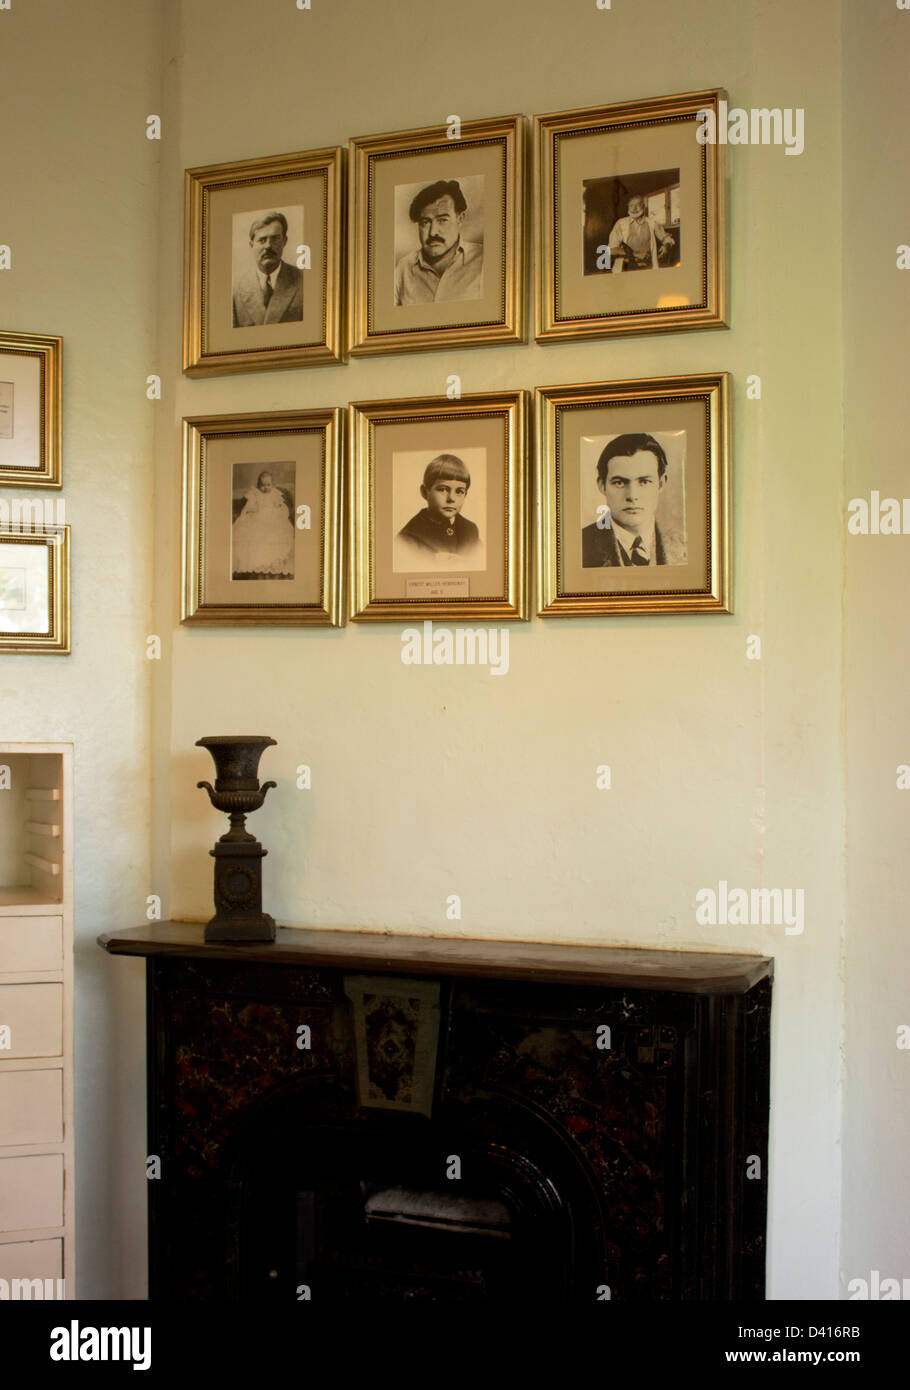 Framed photos of Hemingway at his house in Key West, Florida. Stock Photo